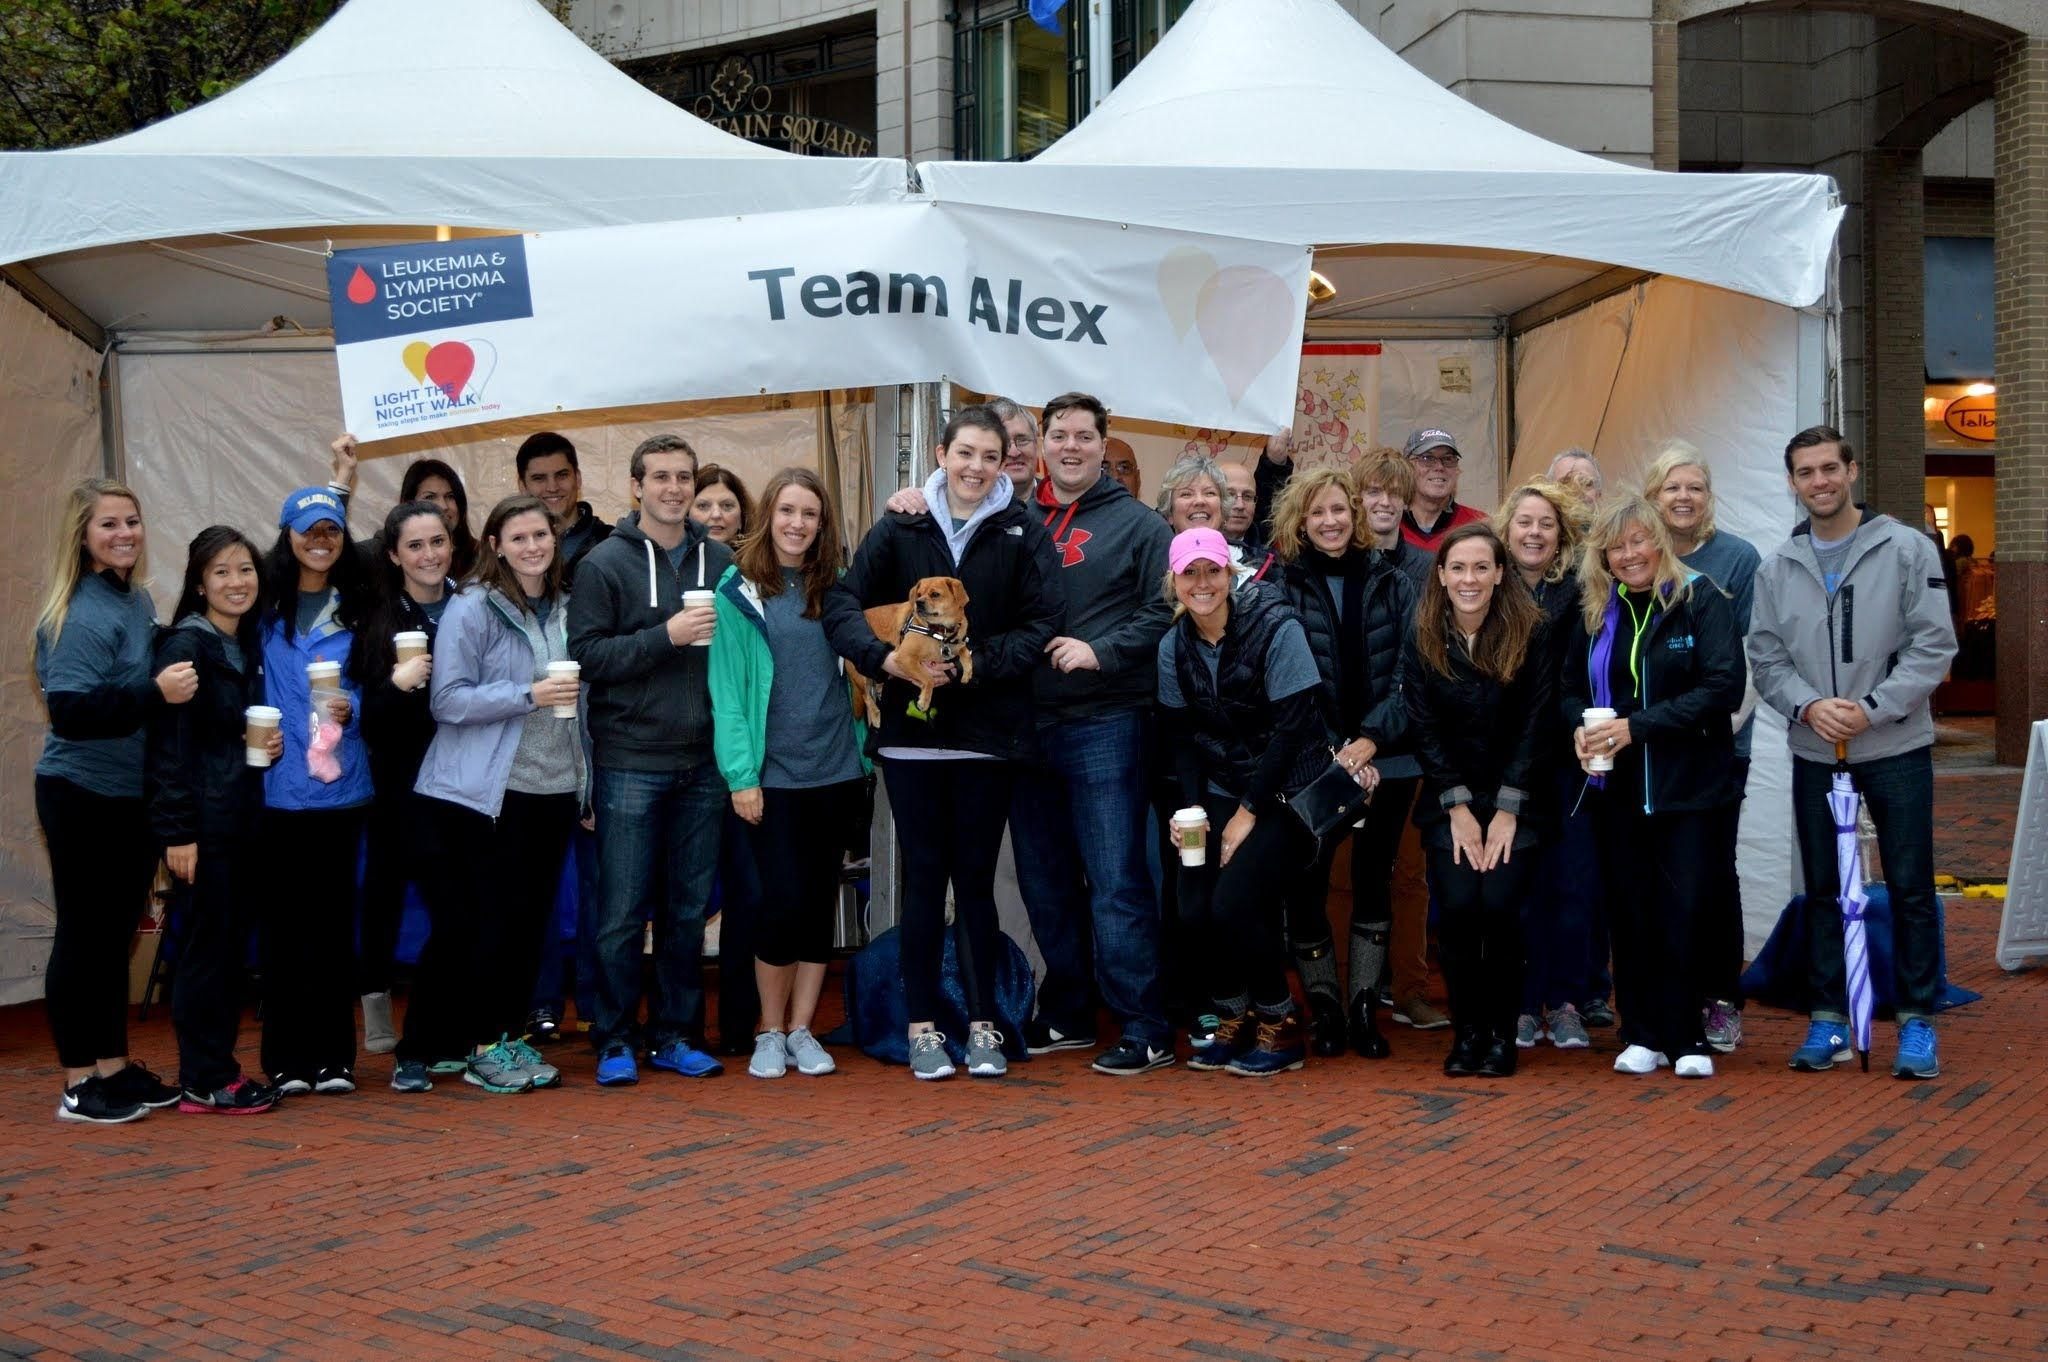 Team Alex, Top Friends and Family Team Northern Virginia